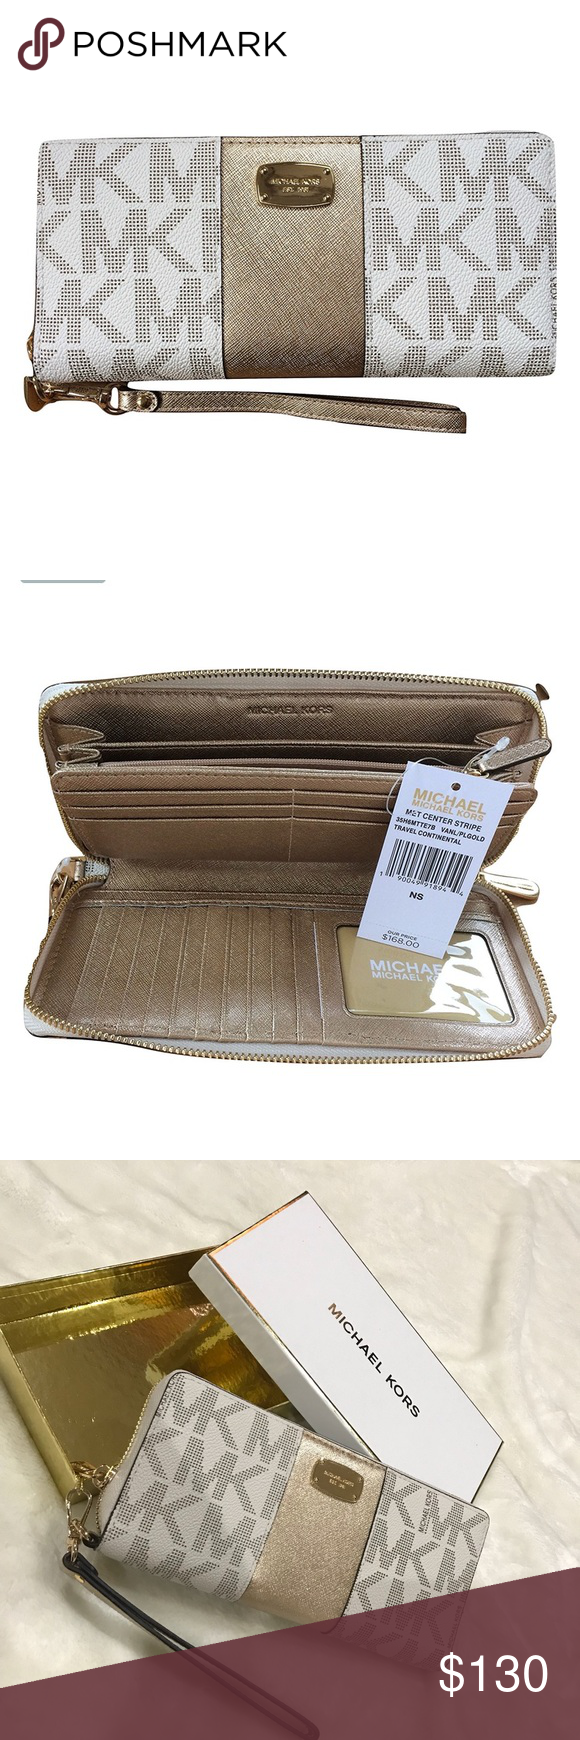 98387514118a34 🌟HP🌟🆕Michael Kors met center stripe wallet NWT Michael Kors met center  stripe zip around. -Travel continental wallet wrapped in vanilla monogram  print ...